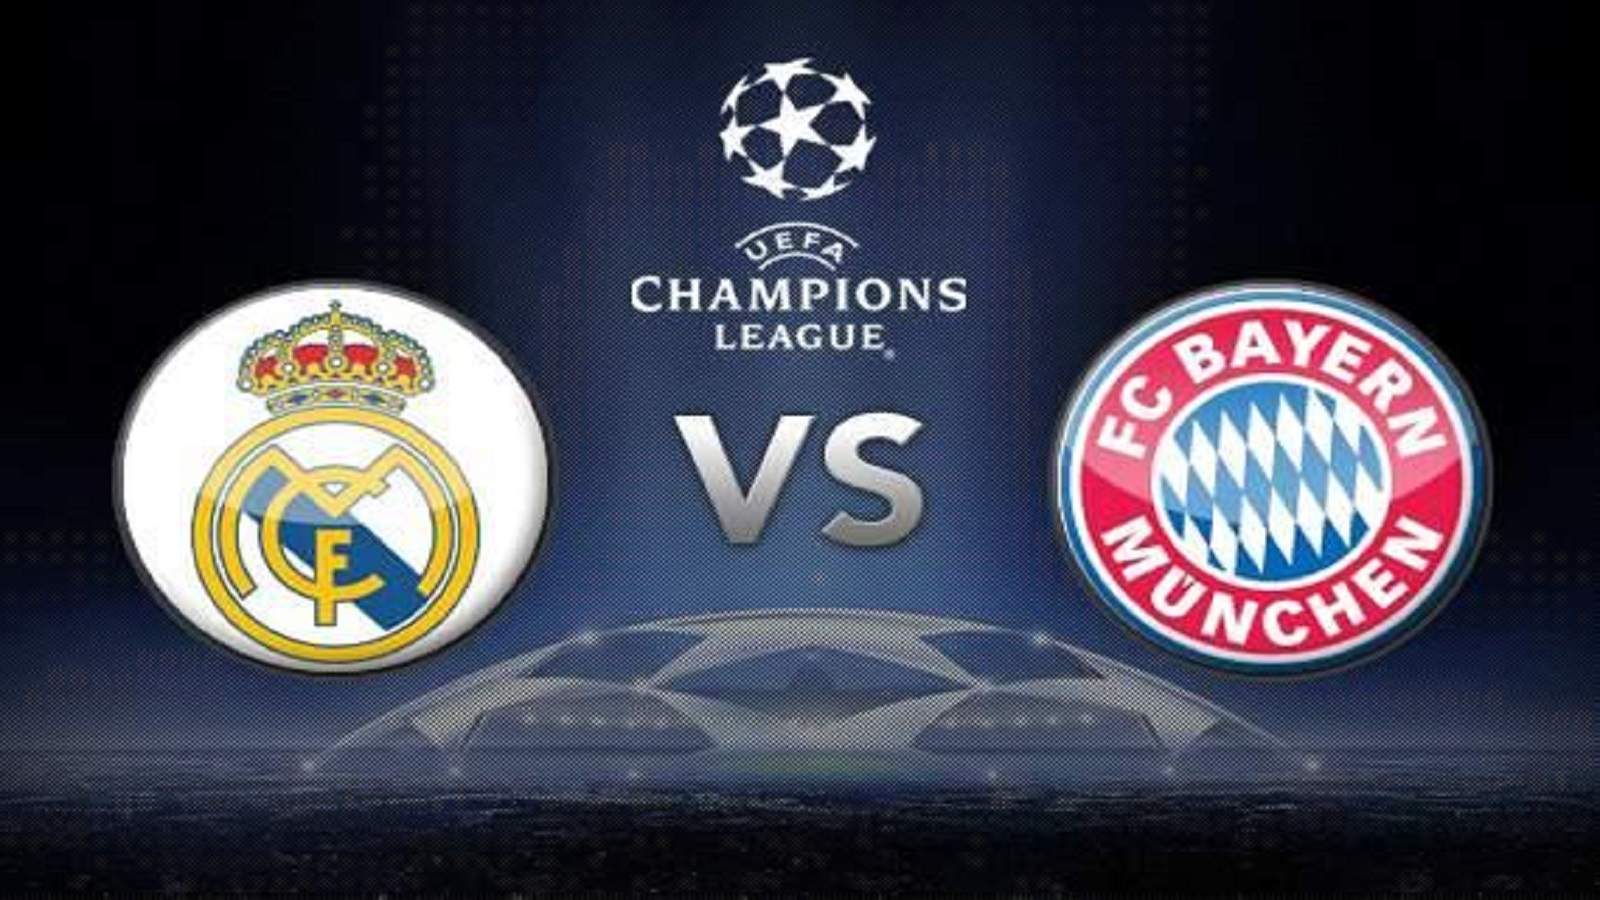 Los equipos Bayern vs Real Madrid en semifinales Champions League